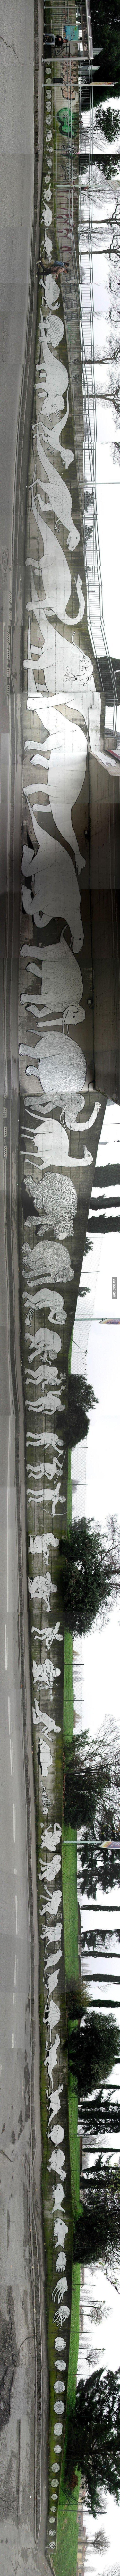 Awesome graffiti is awesome